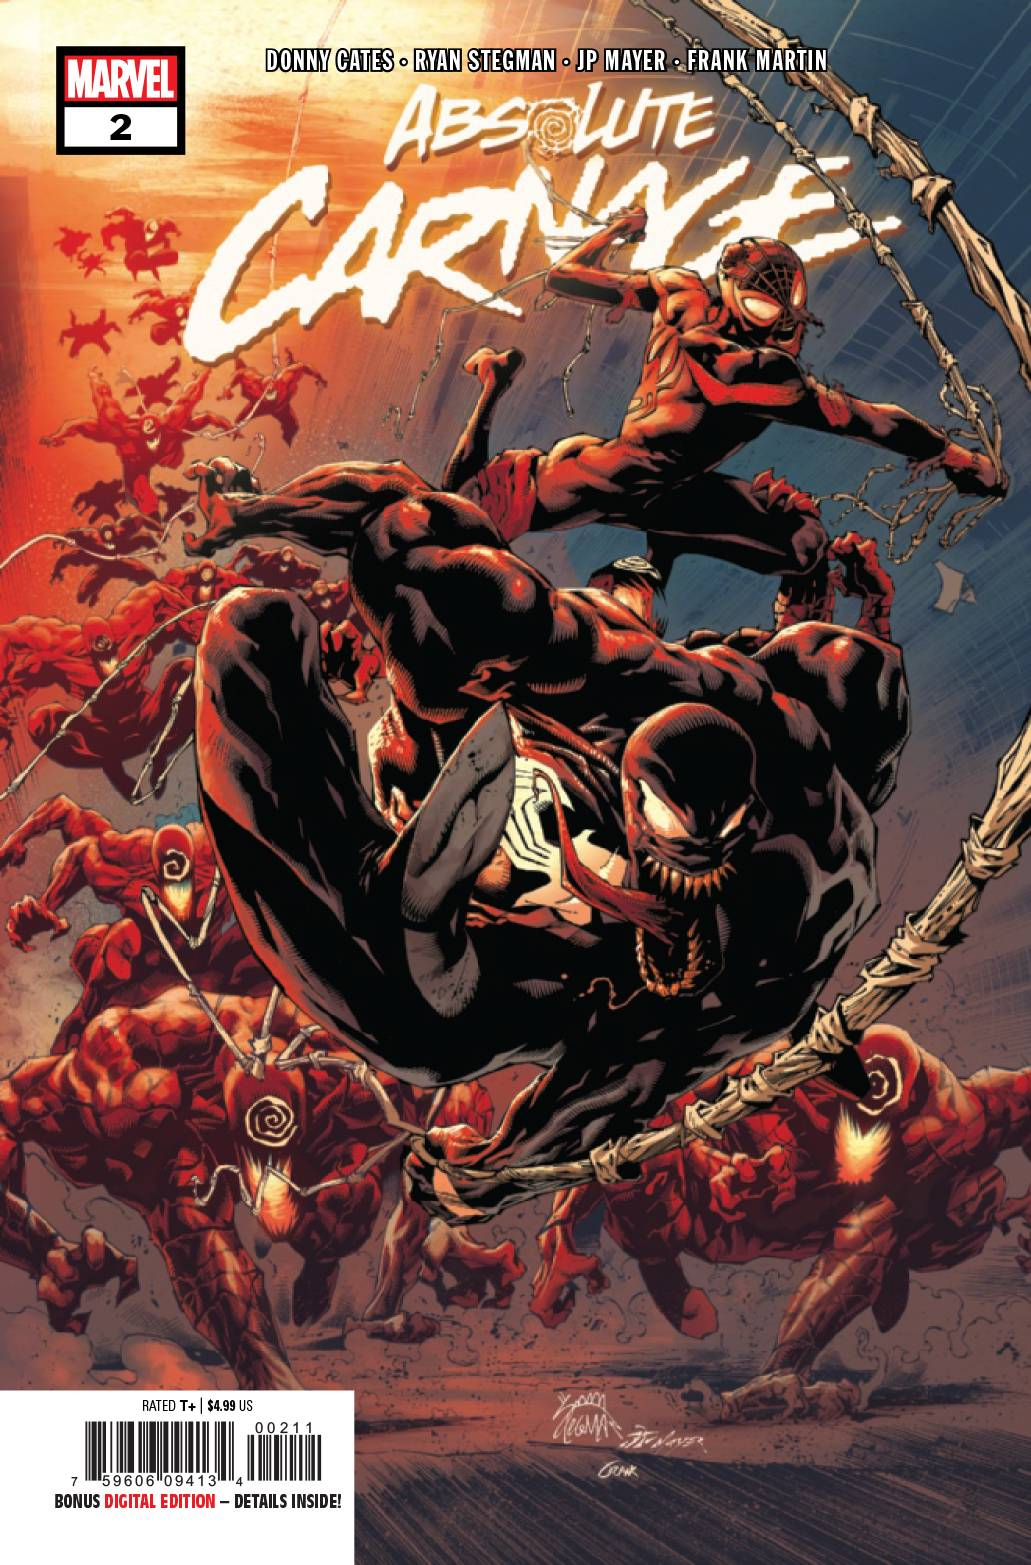 08/28/2019 ABSOLUTE CARNAGE #2 (OF 4) AC